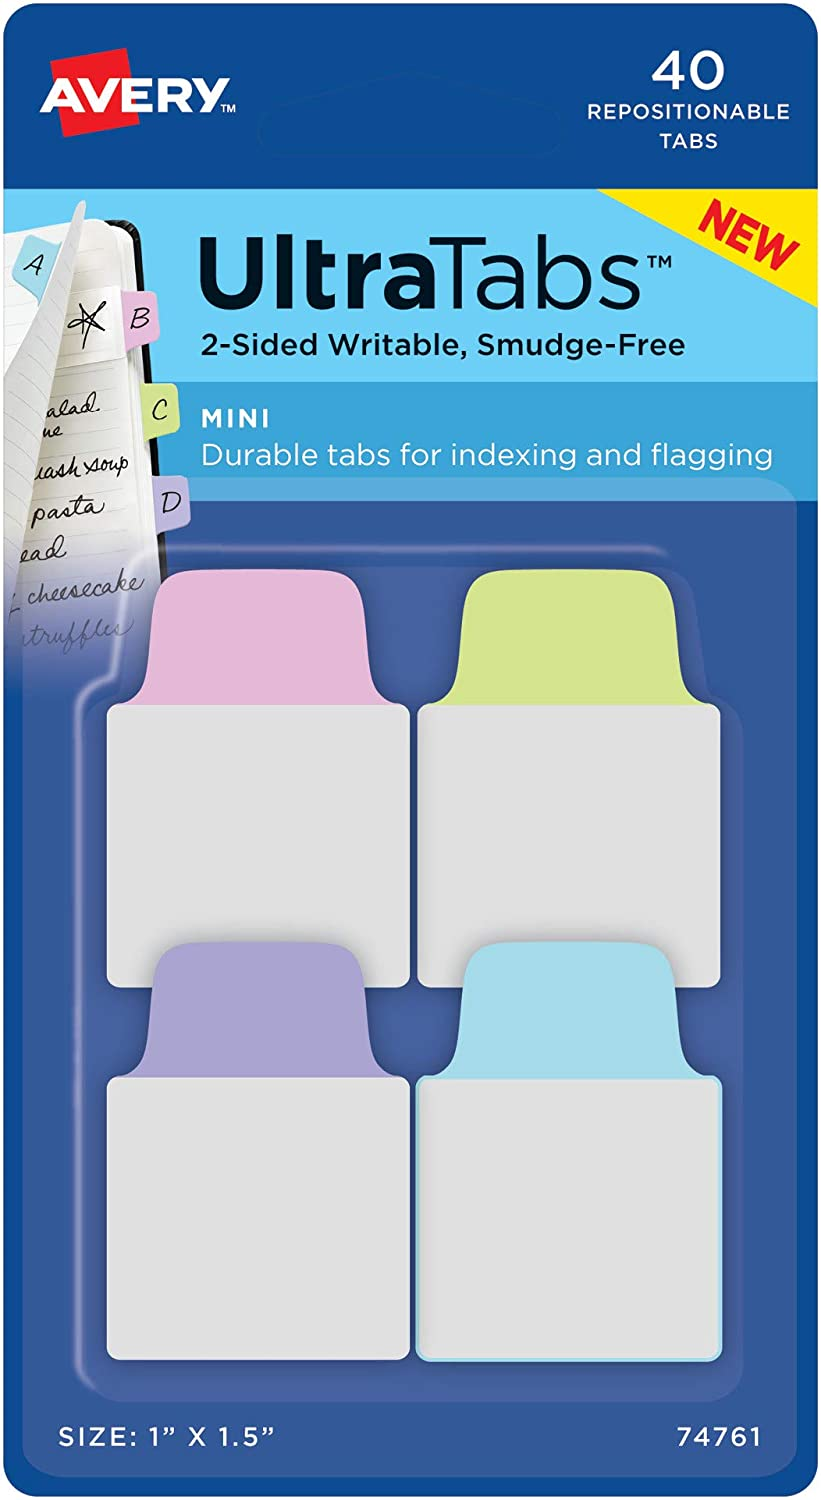 "Avery Mini Ultra Tabs, 1"" x 1.5"", 2-Side Writable, Pastel Purple/Blue/Pink, 40 Repositionable Tabs (74761)"